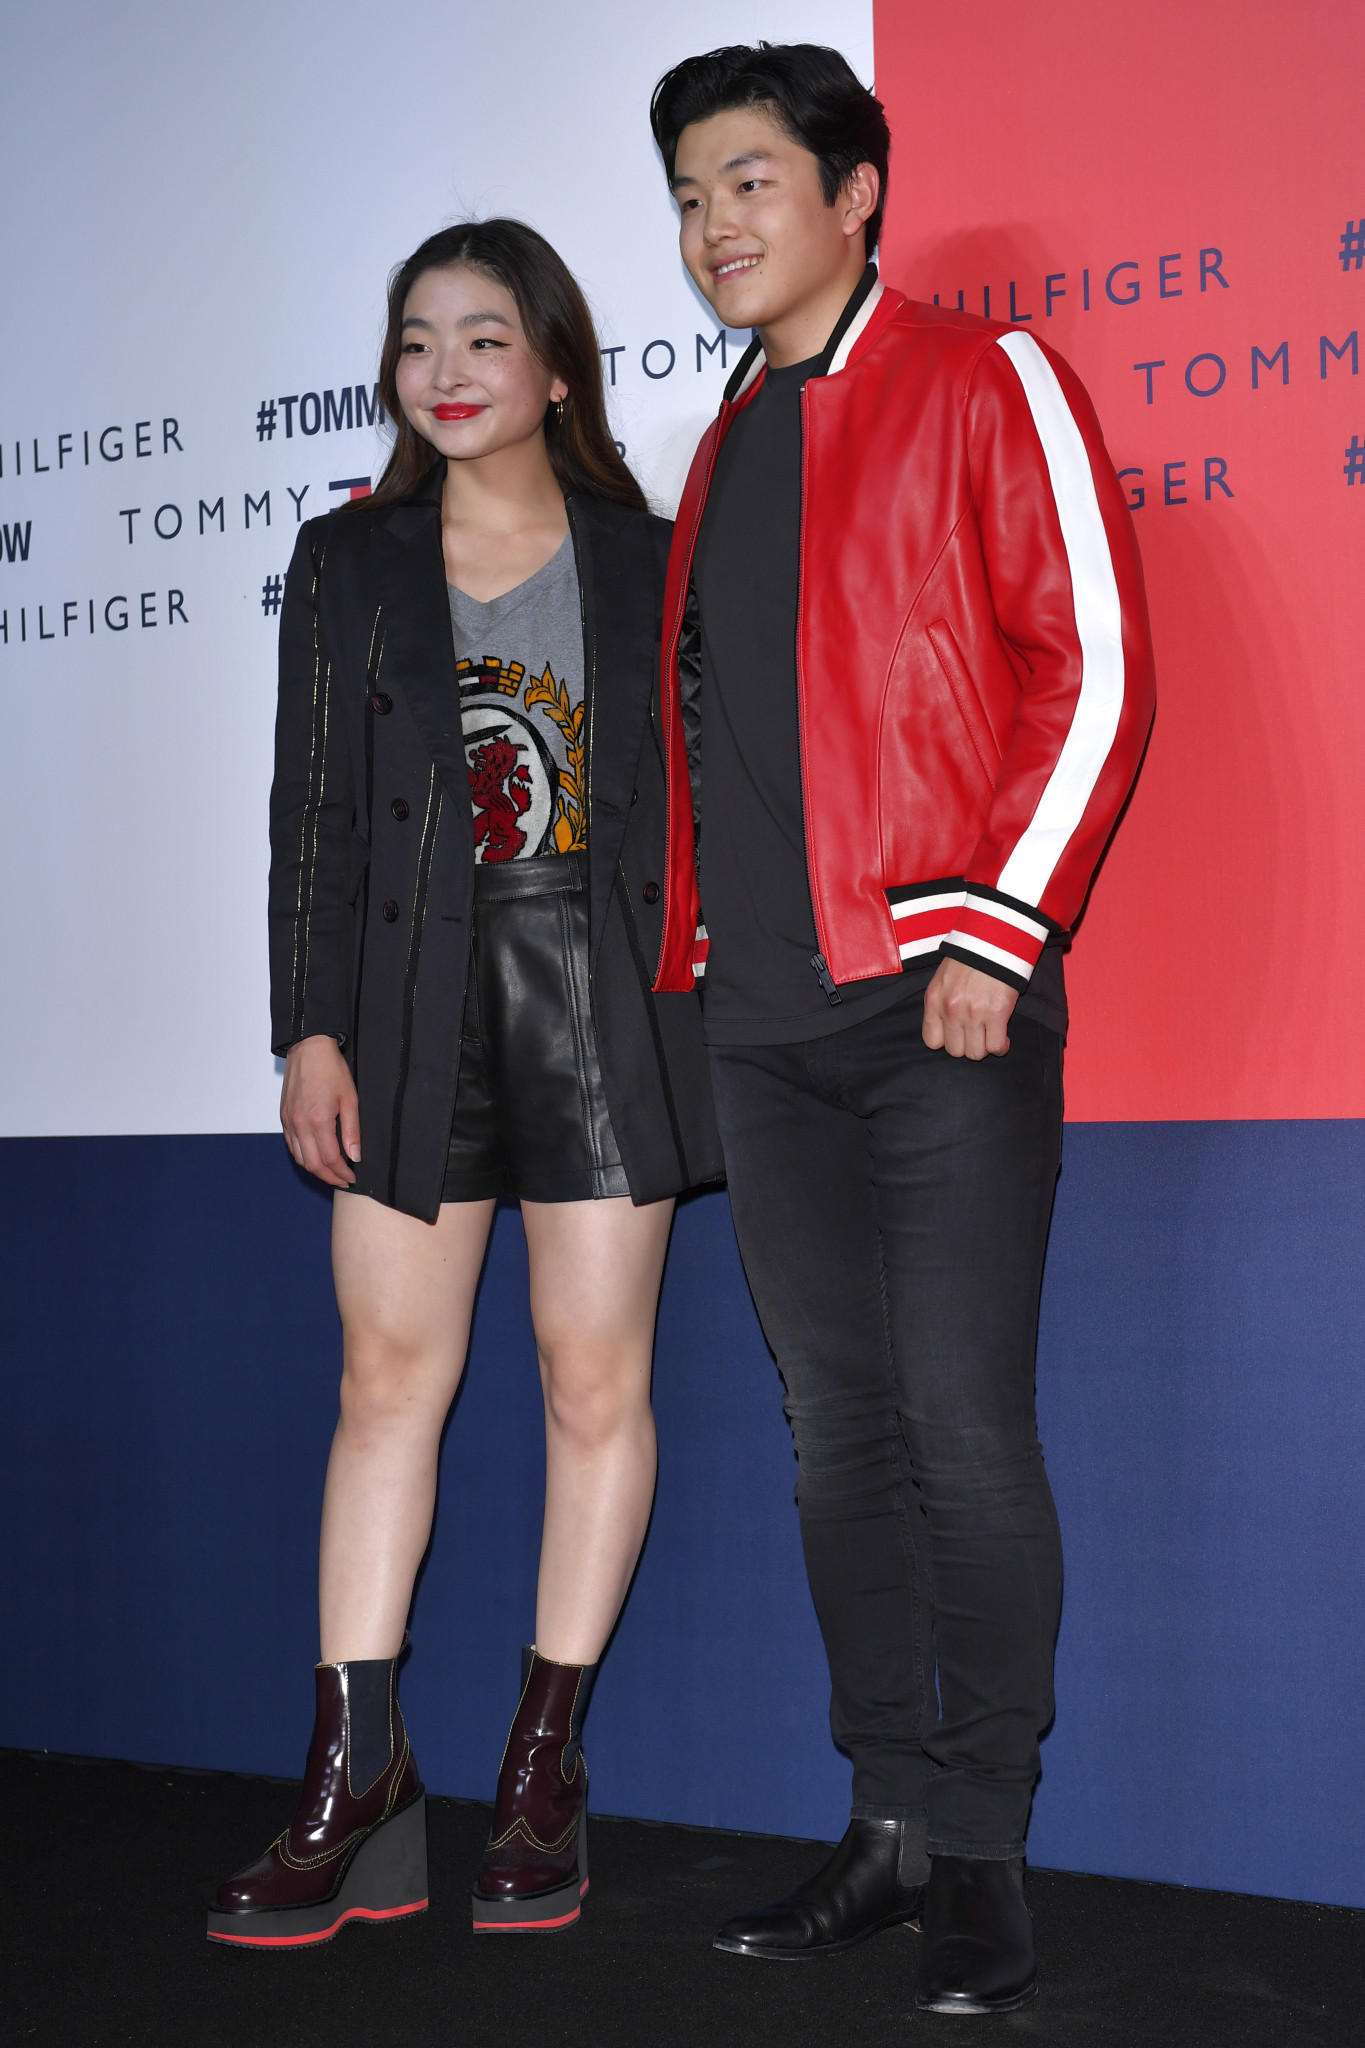 Figure skaters Maia and Alex Shibutani at a Tommy Hilfiger event in Tokyo ©Getty Images